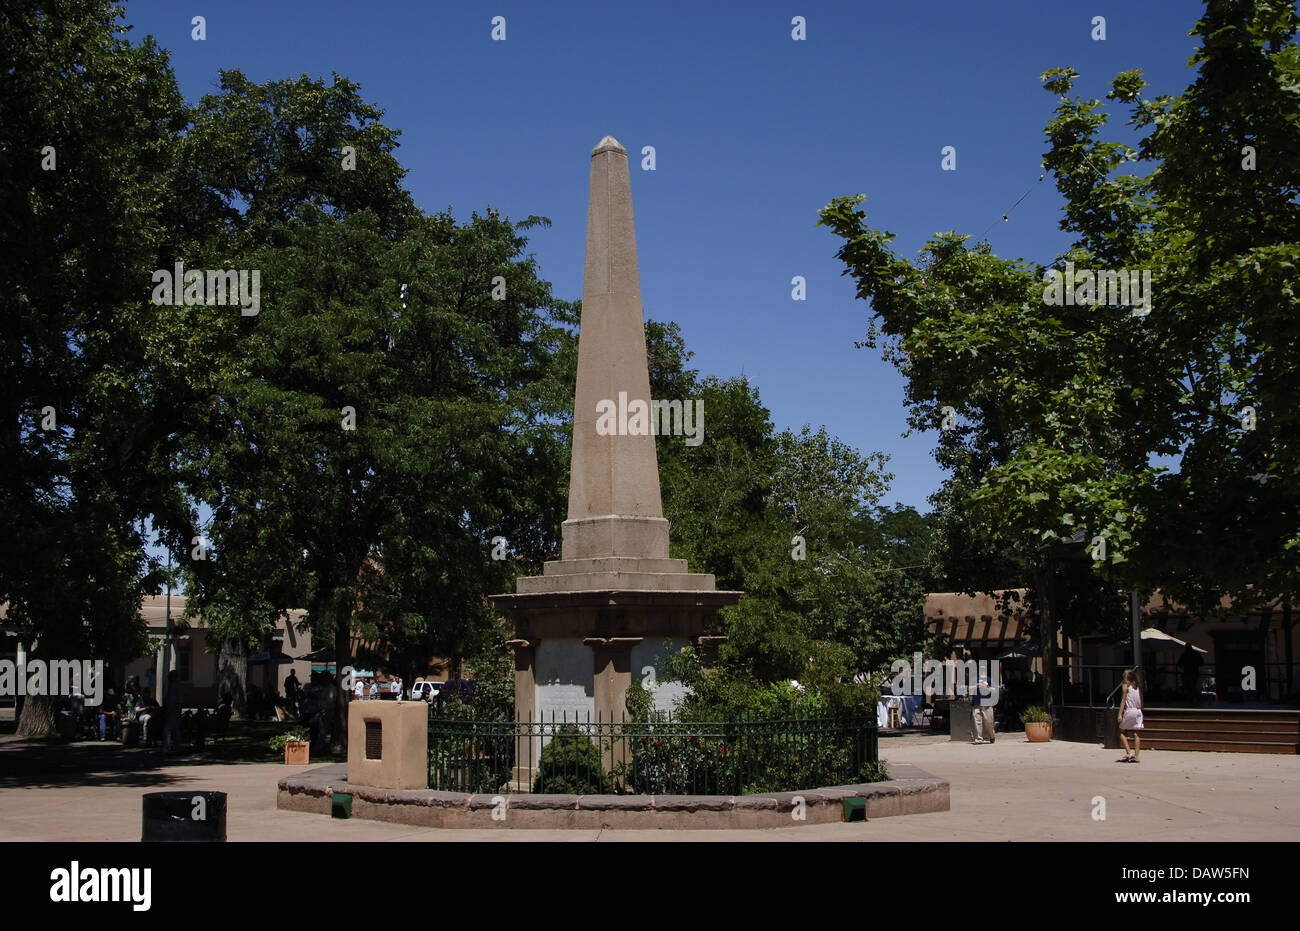 Page 2 Commemorative Obelisk High Resolution Stock Photography And Images Alamy